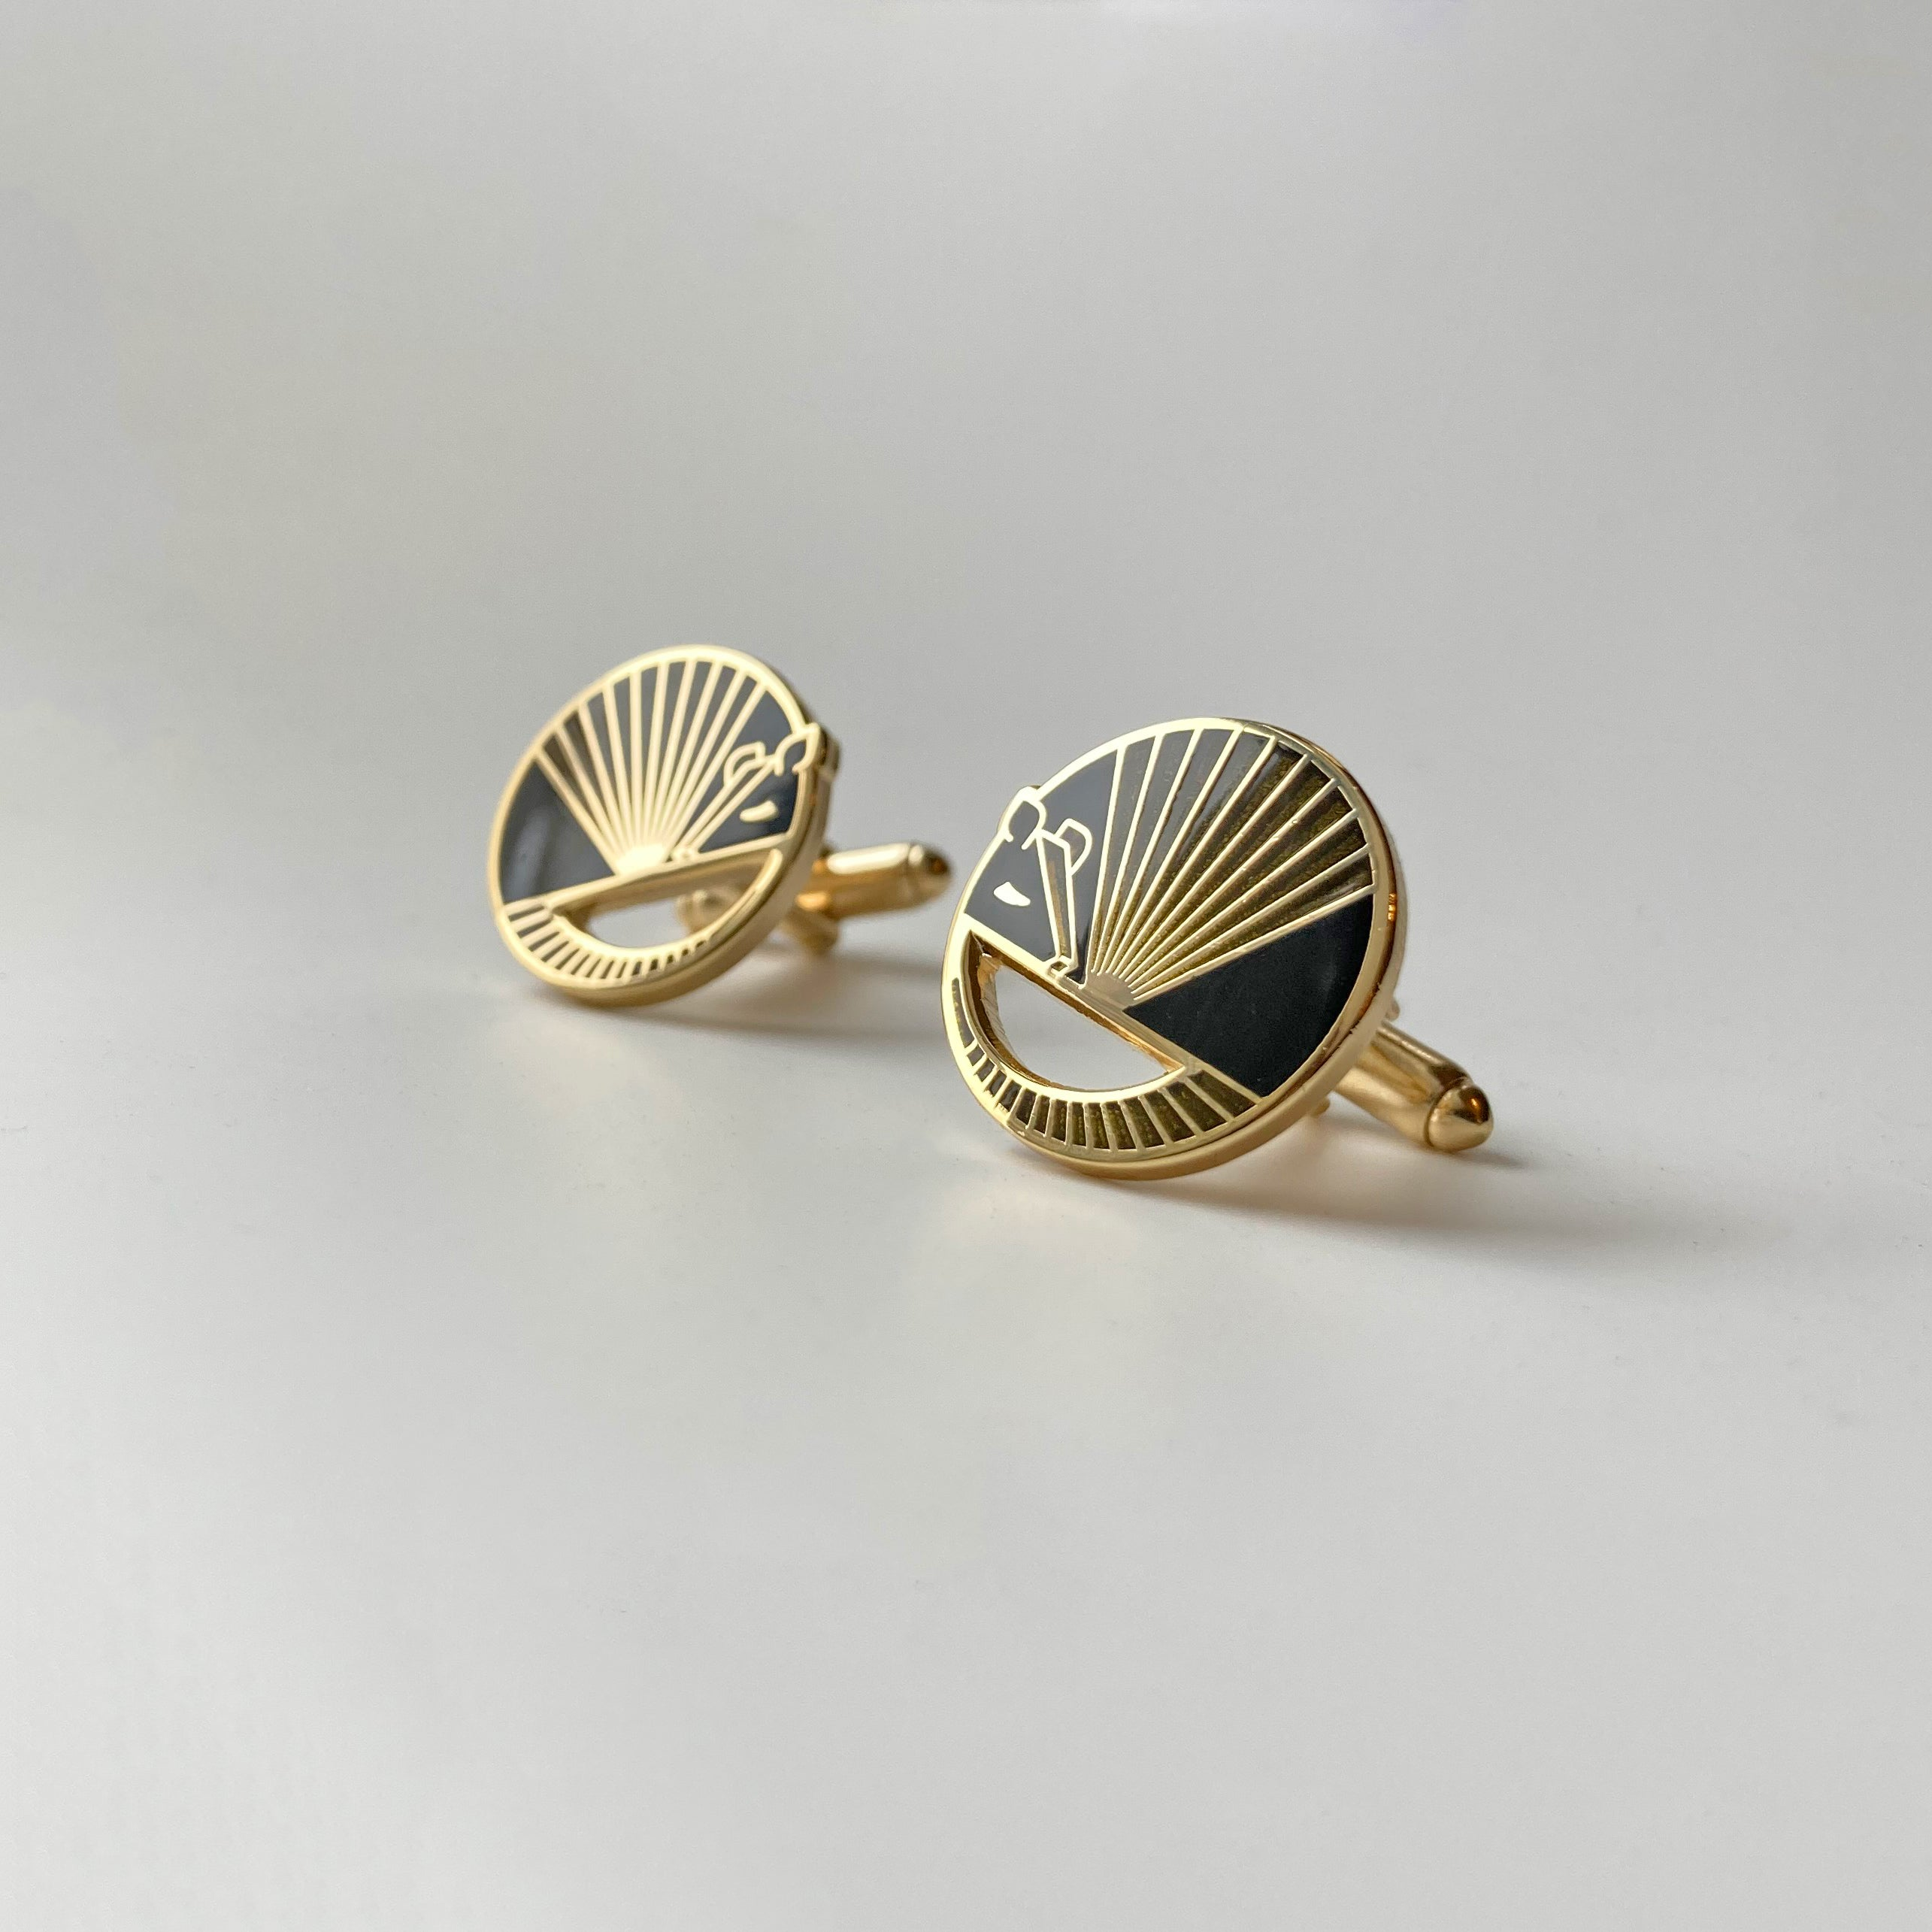 Karmadillo Cufflinks